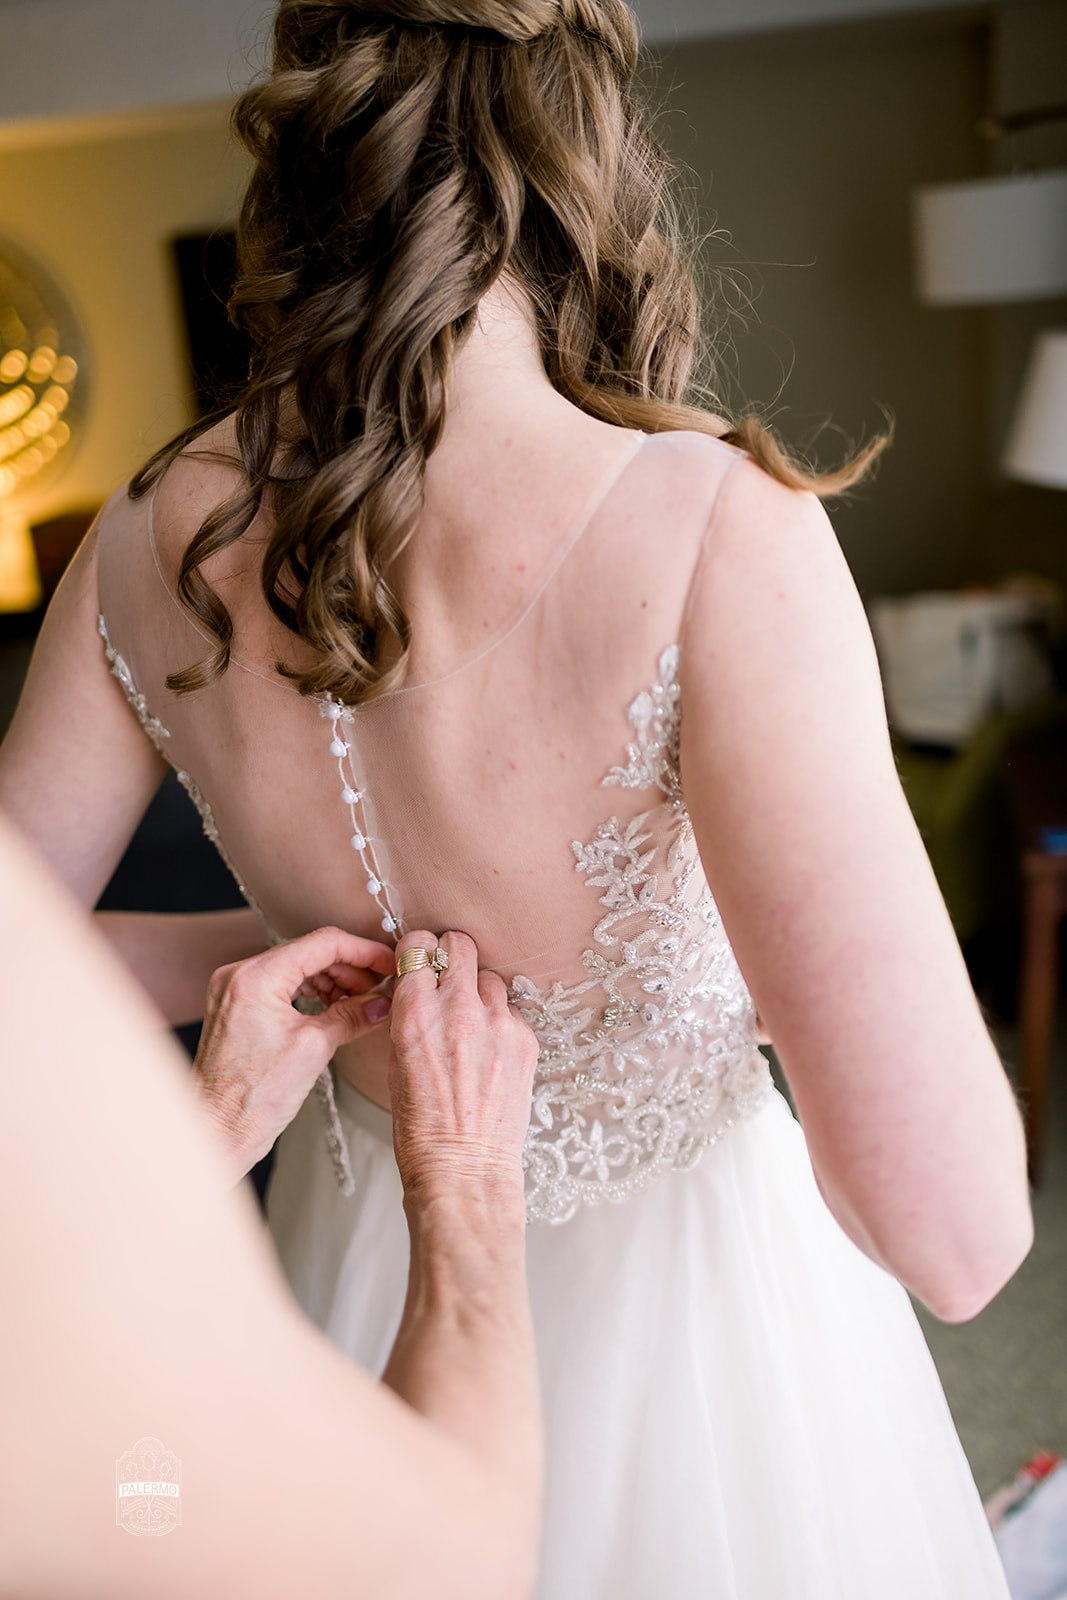 Bride getting into wedding dress with for fall barn wedding in Pittsburgh, PA planned by Exhale Events. Find more wedding inspiration at exhale-events.com!